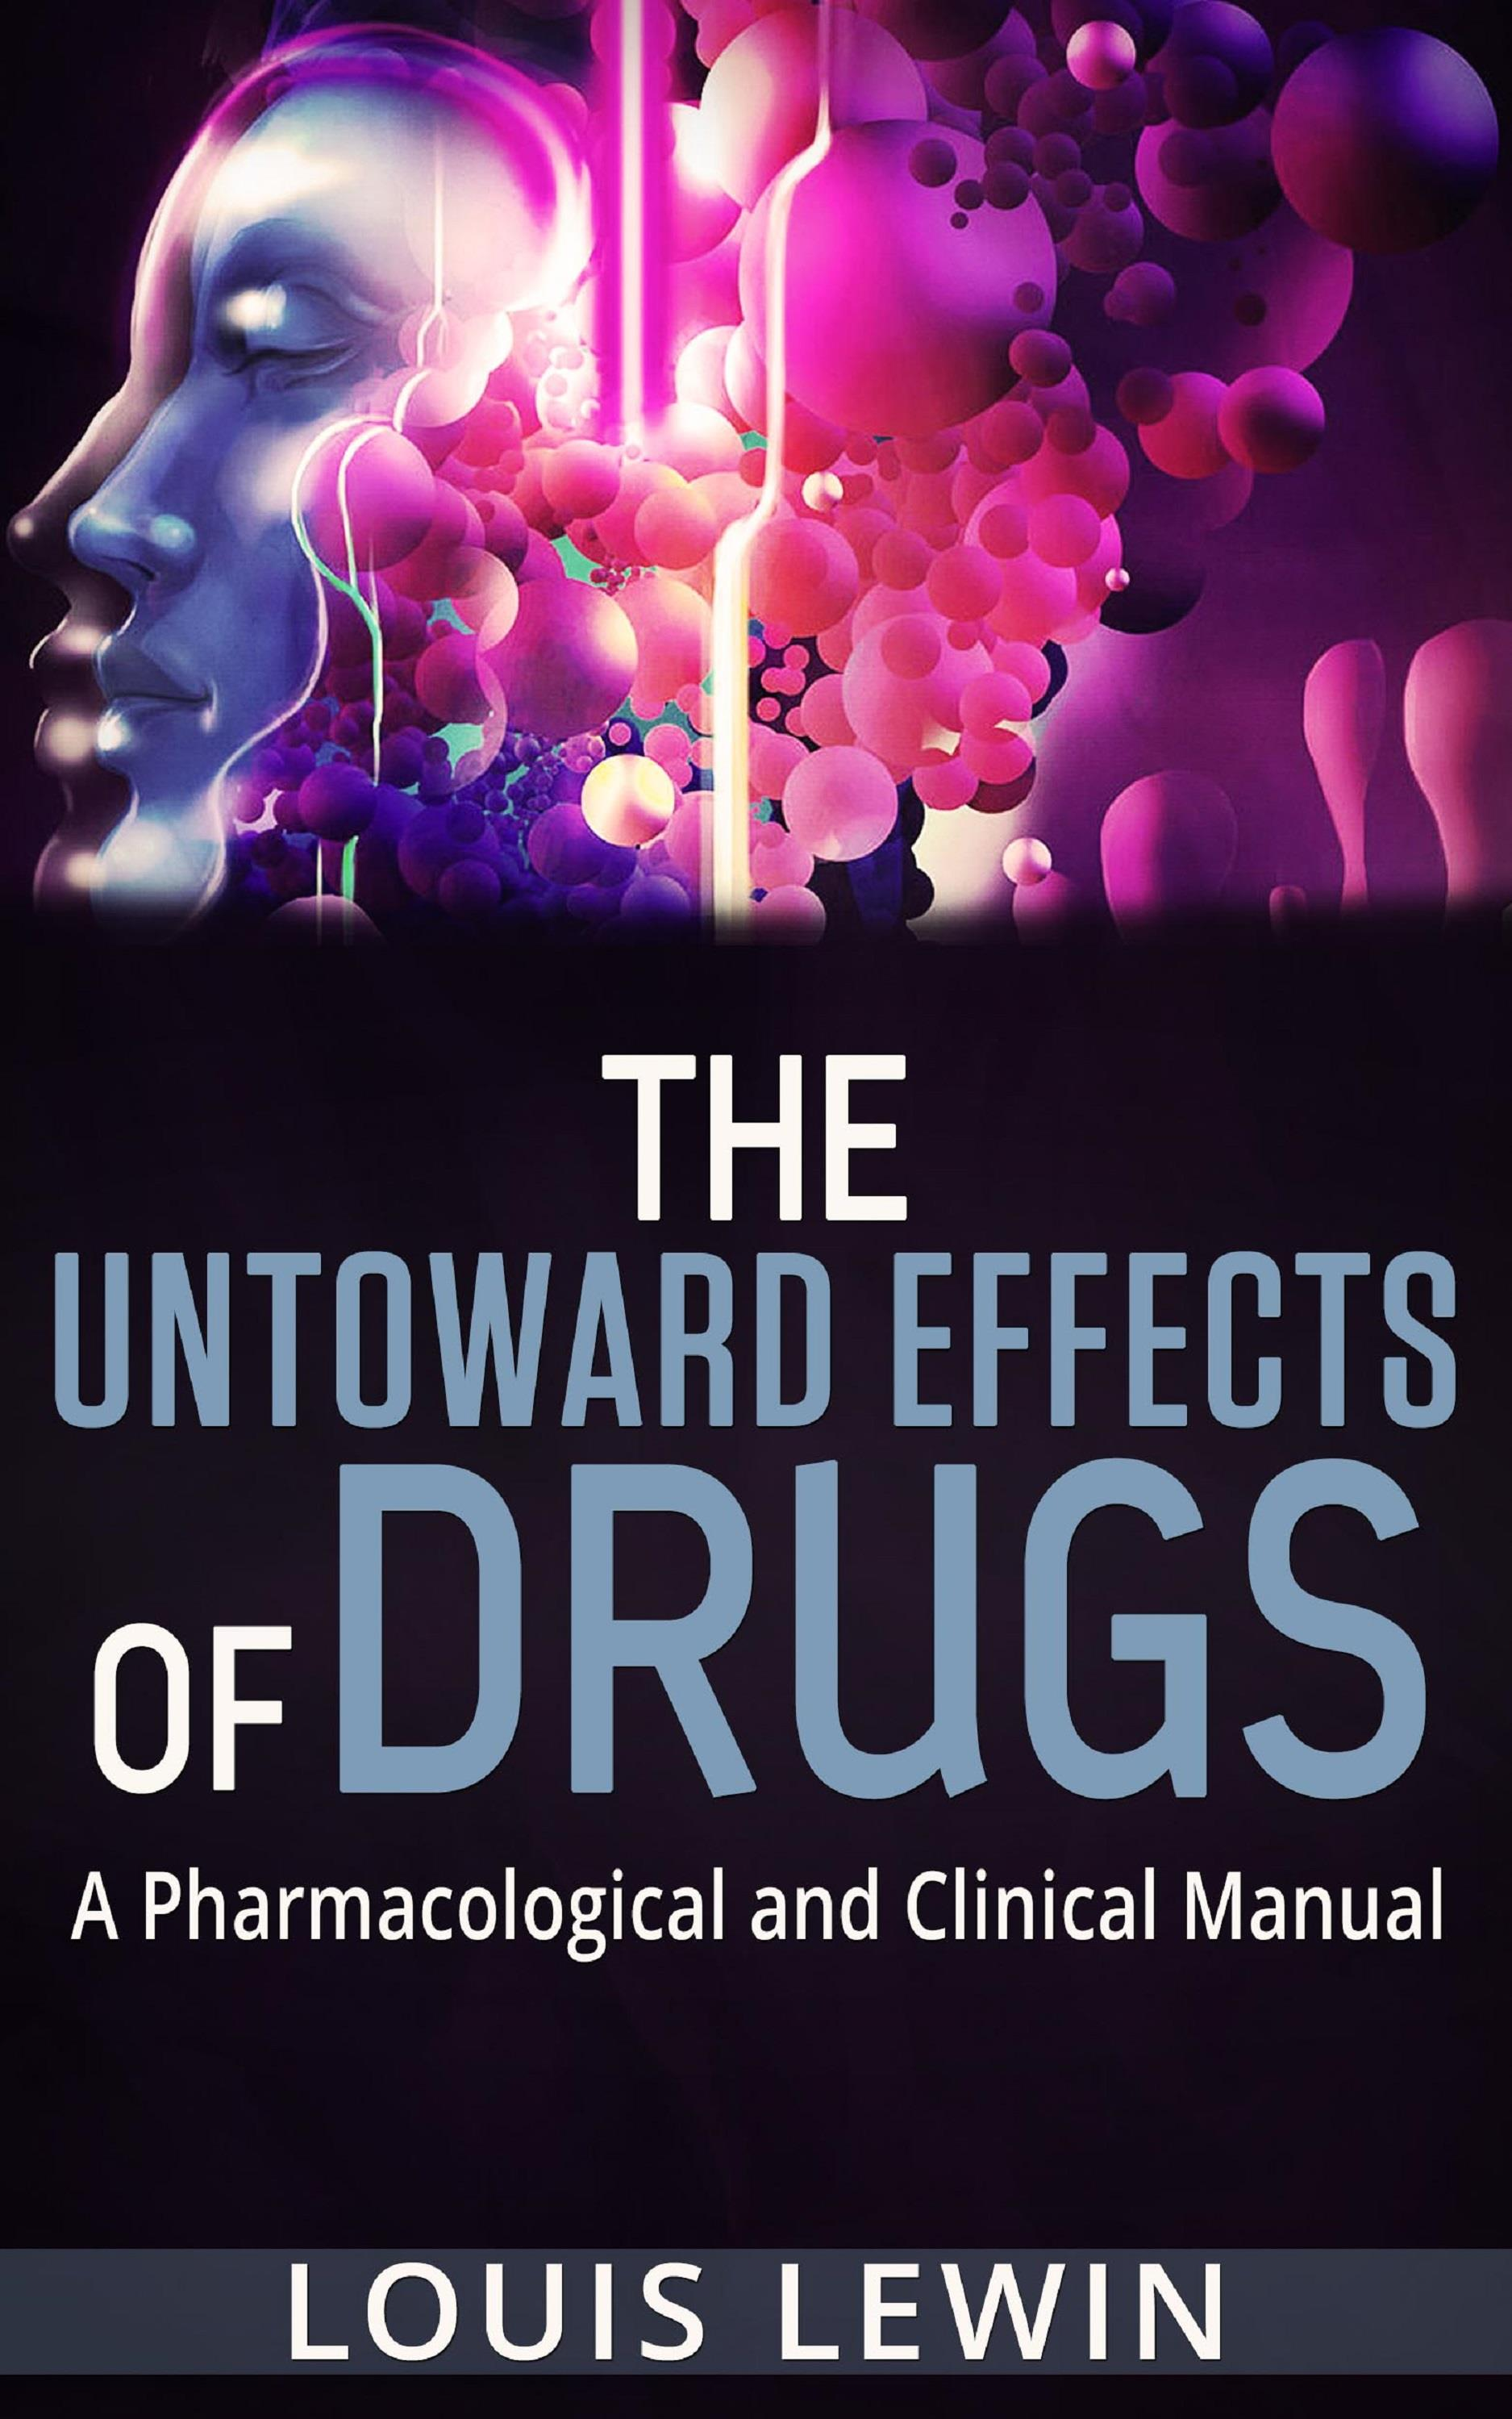 The Untoward Effects of Drugs - A Pharmacological and Clinical Manual